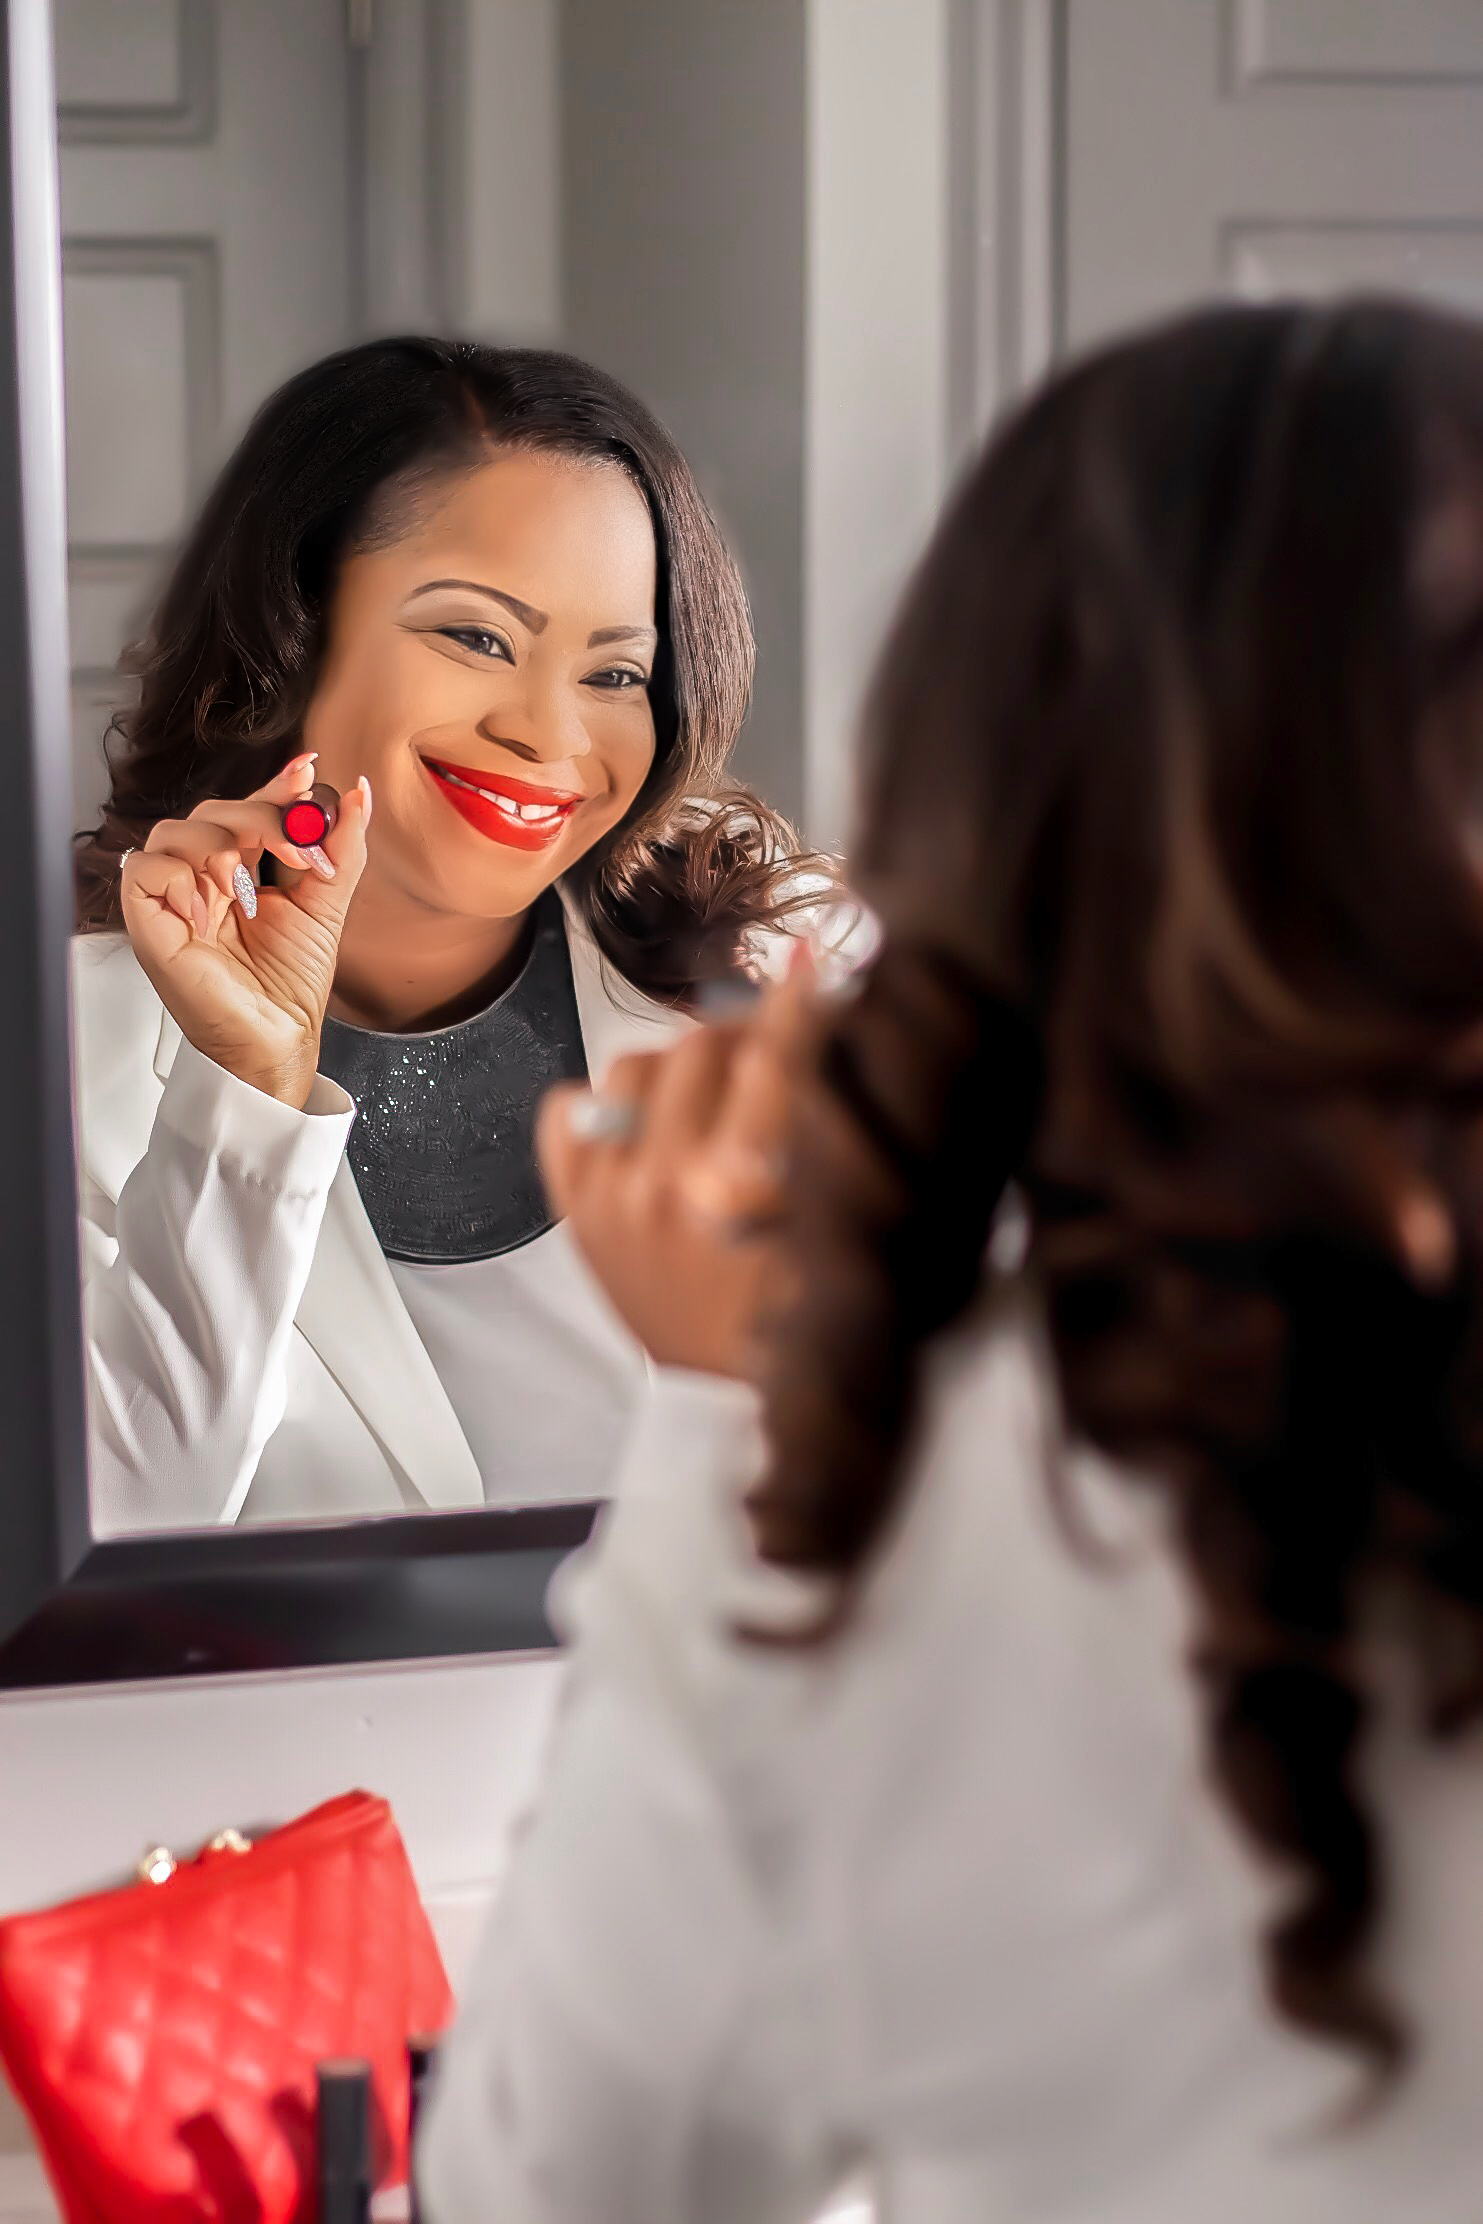 Shaniece M. Wise in the Mirror